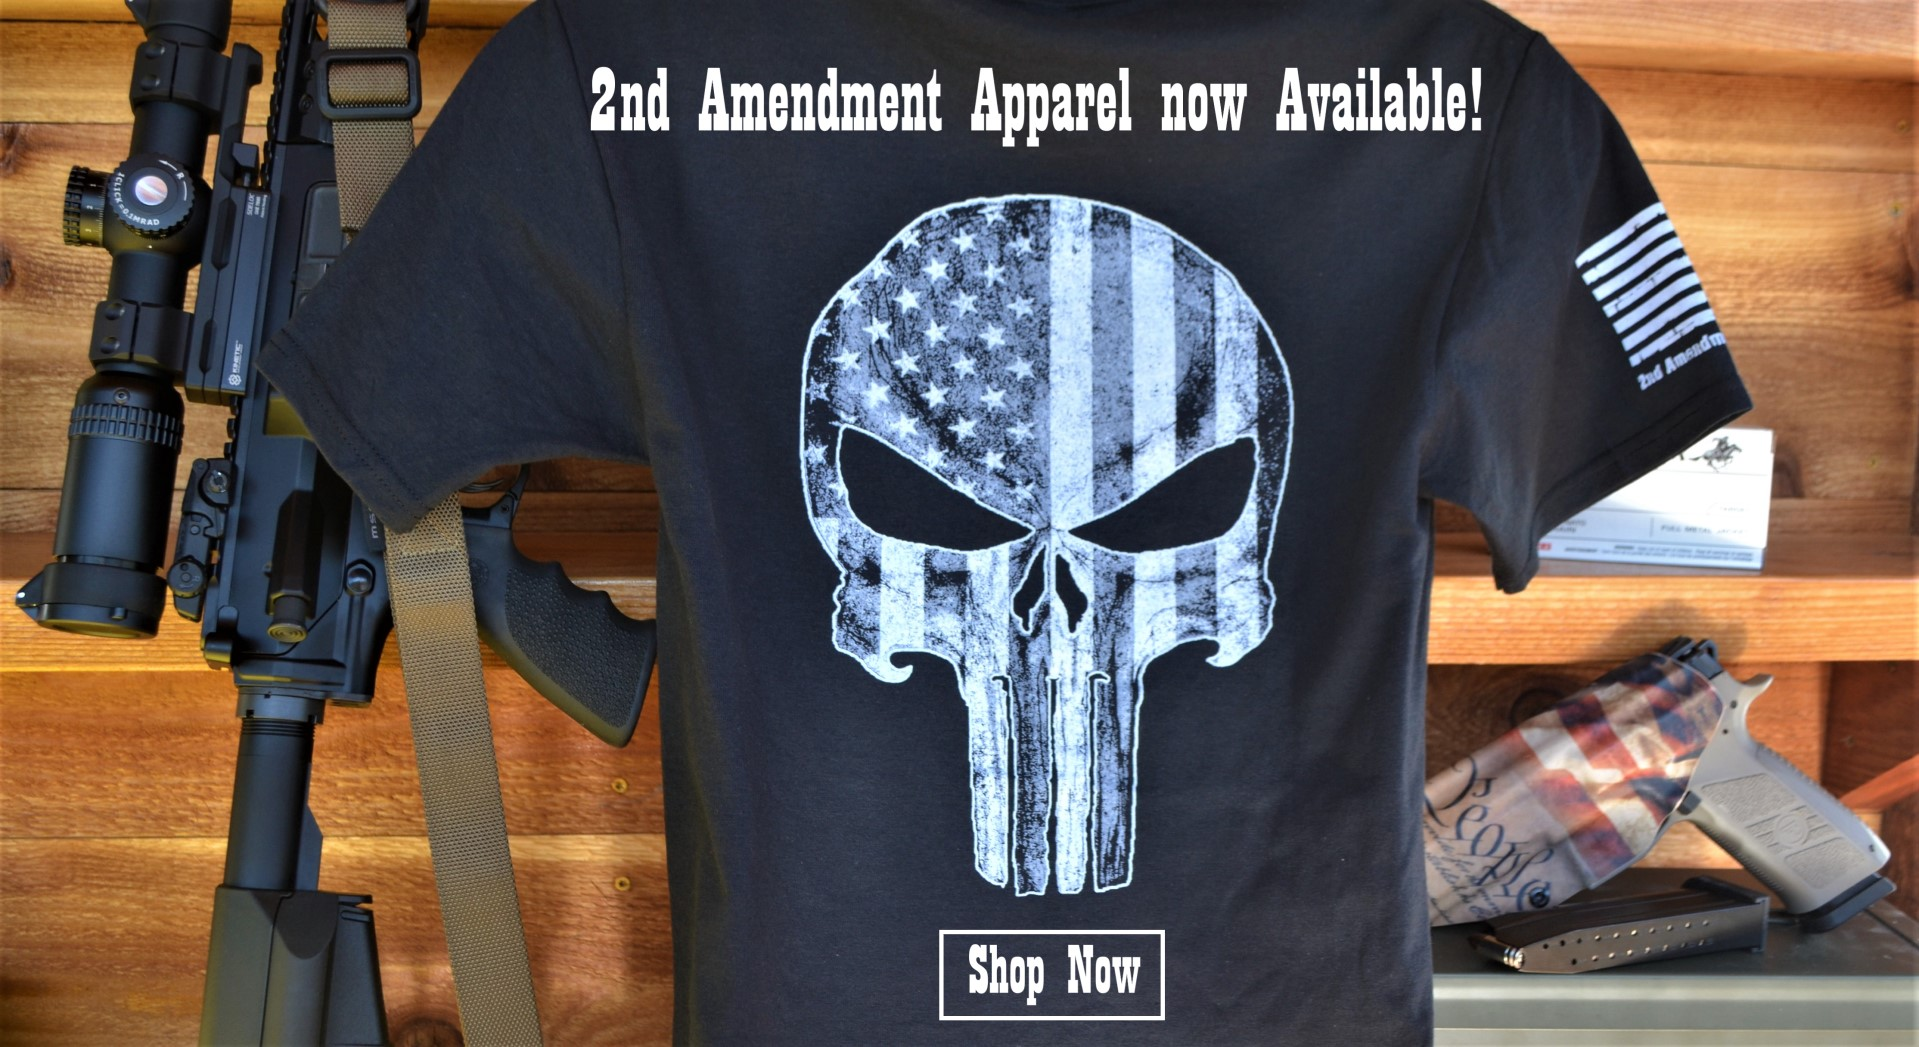 2nd Amendment Apparel Homepage Banner